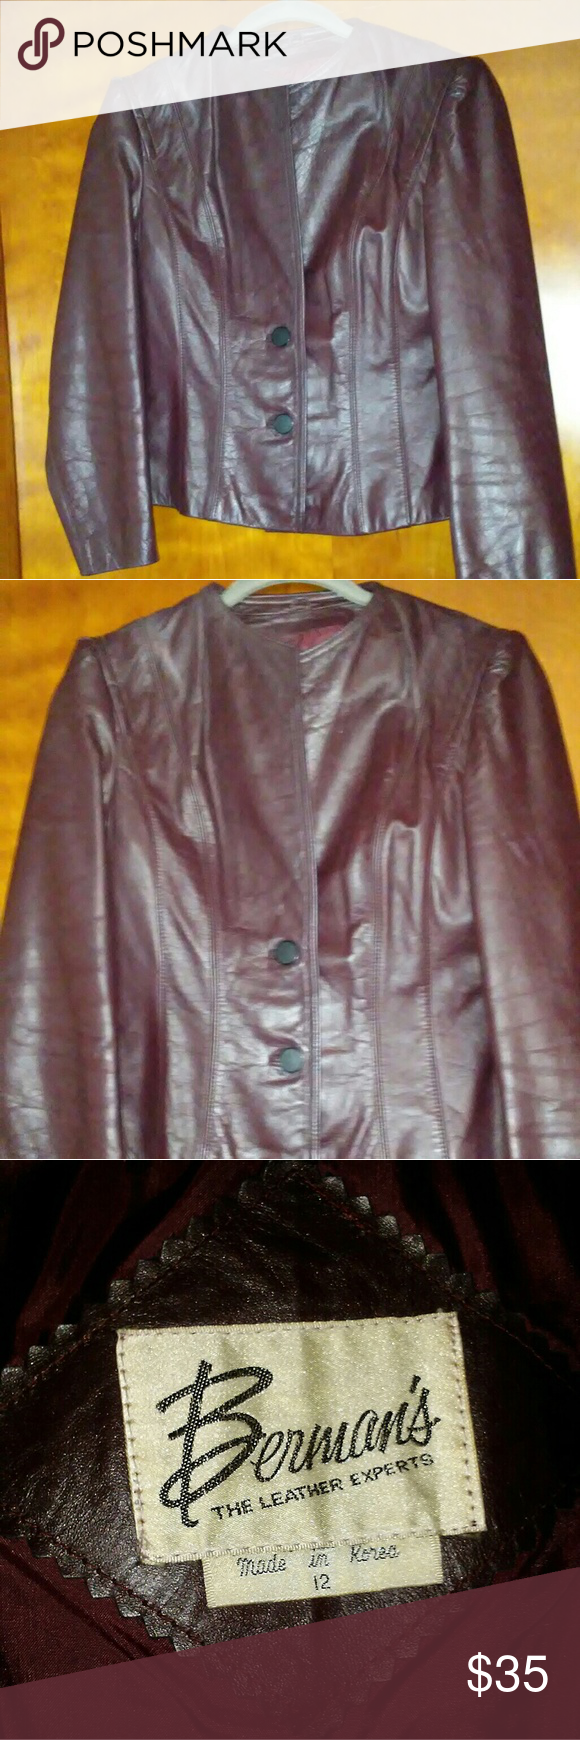 Vintage Ladies Burgundy Leather jacket Beautiful Ladies 2 button burgundy leather jacket. Vintage. In good condition. Missing the matching belt. Berman's Jackets & Coats